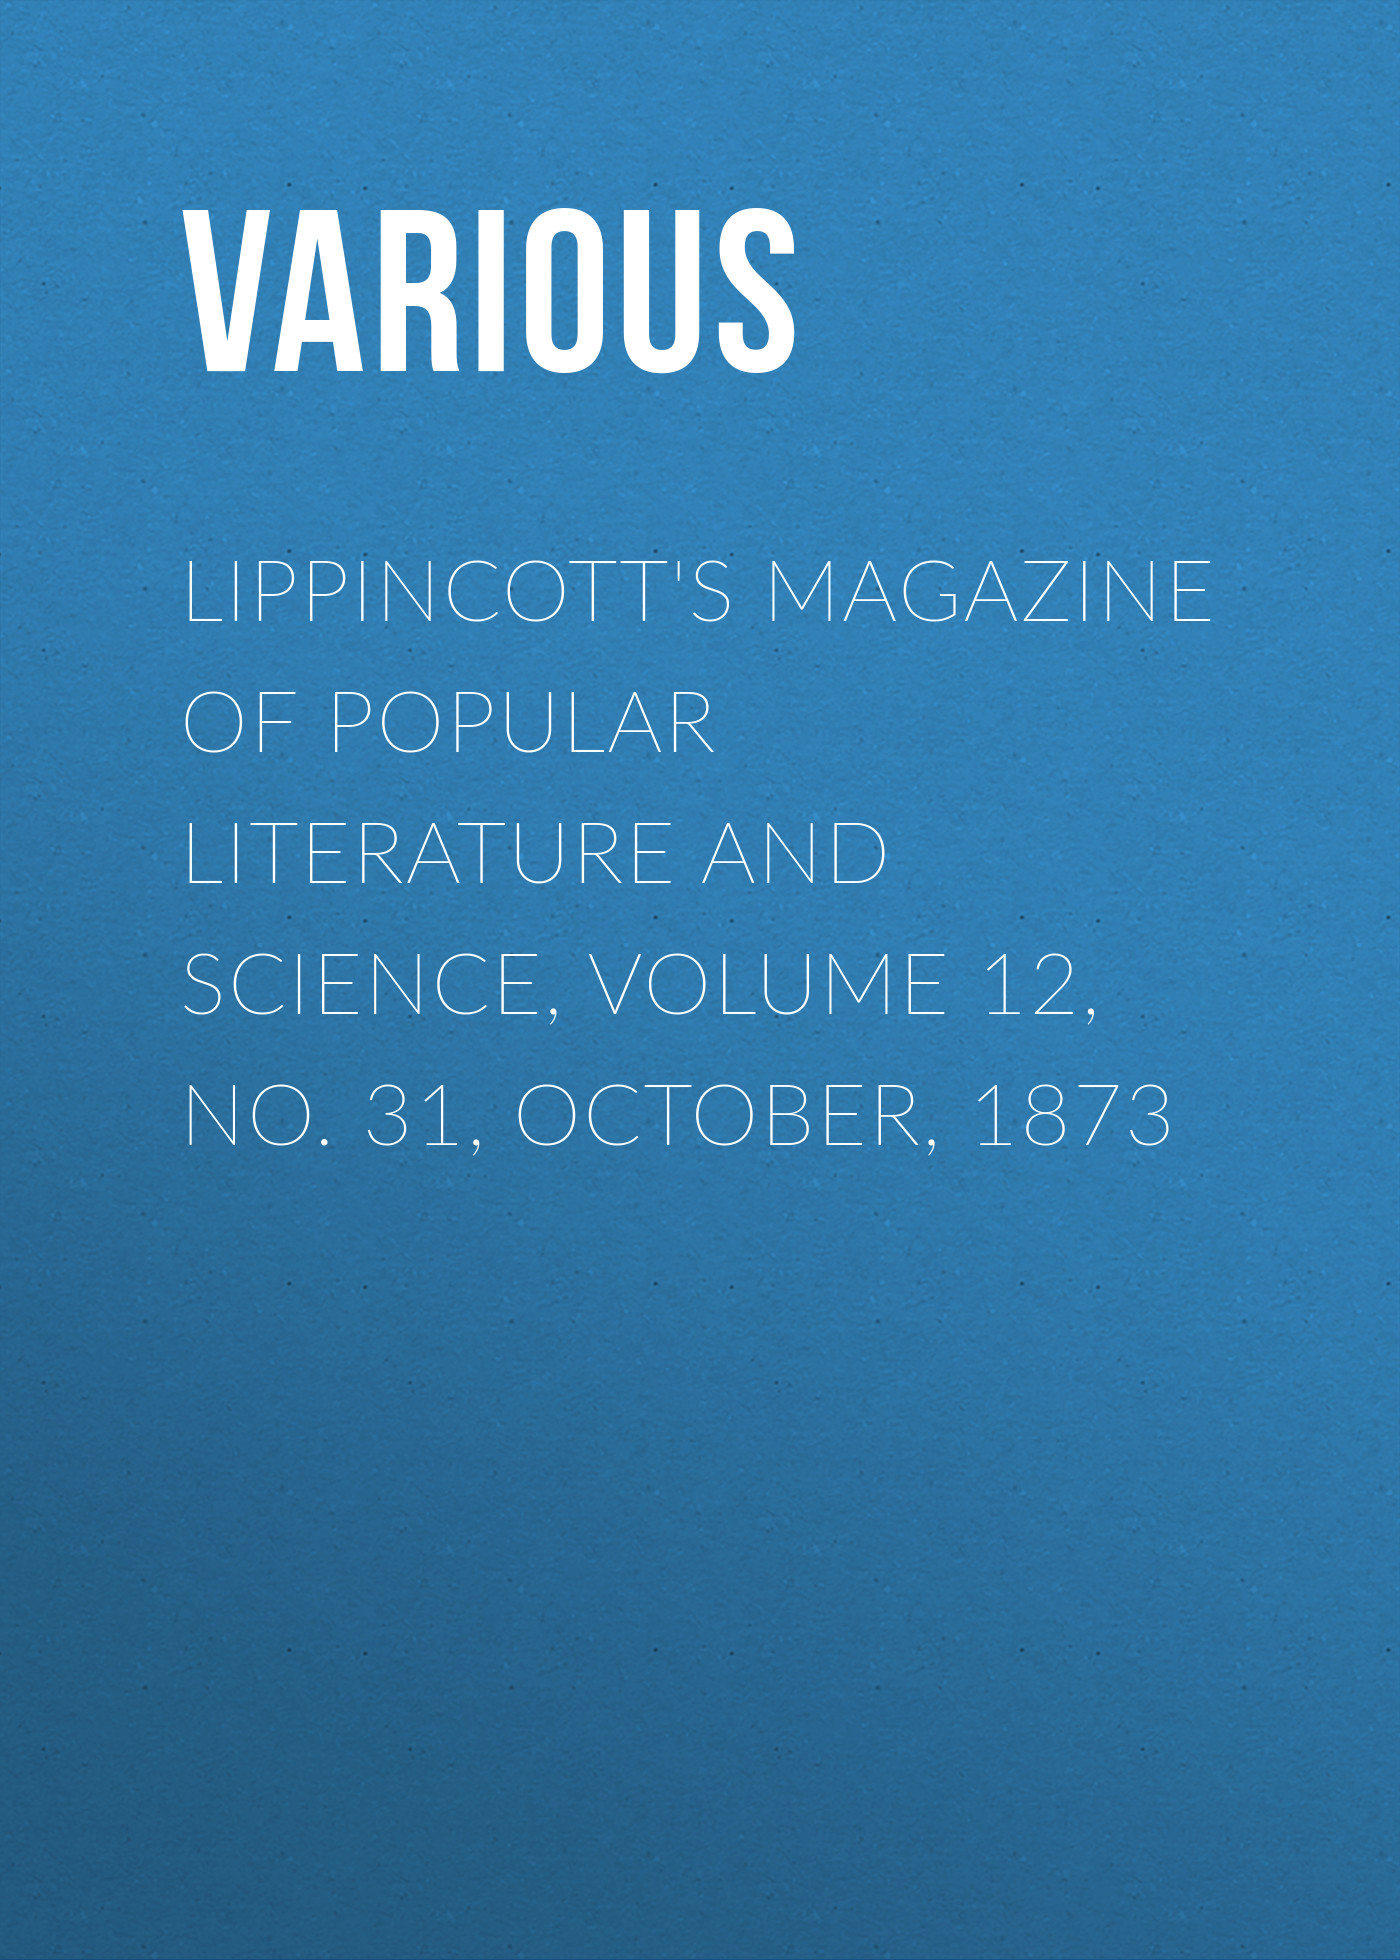 цена Various Lippincott's Magazine of Popular Literature and Science, Volume 12, No. 31, October, 1873